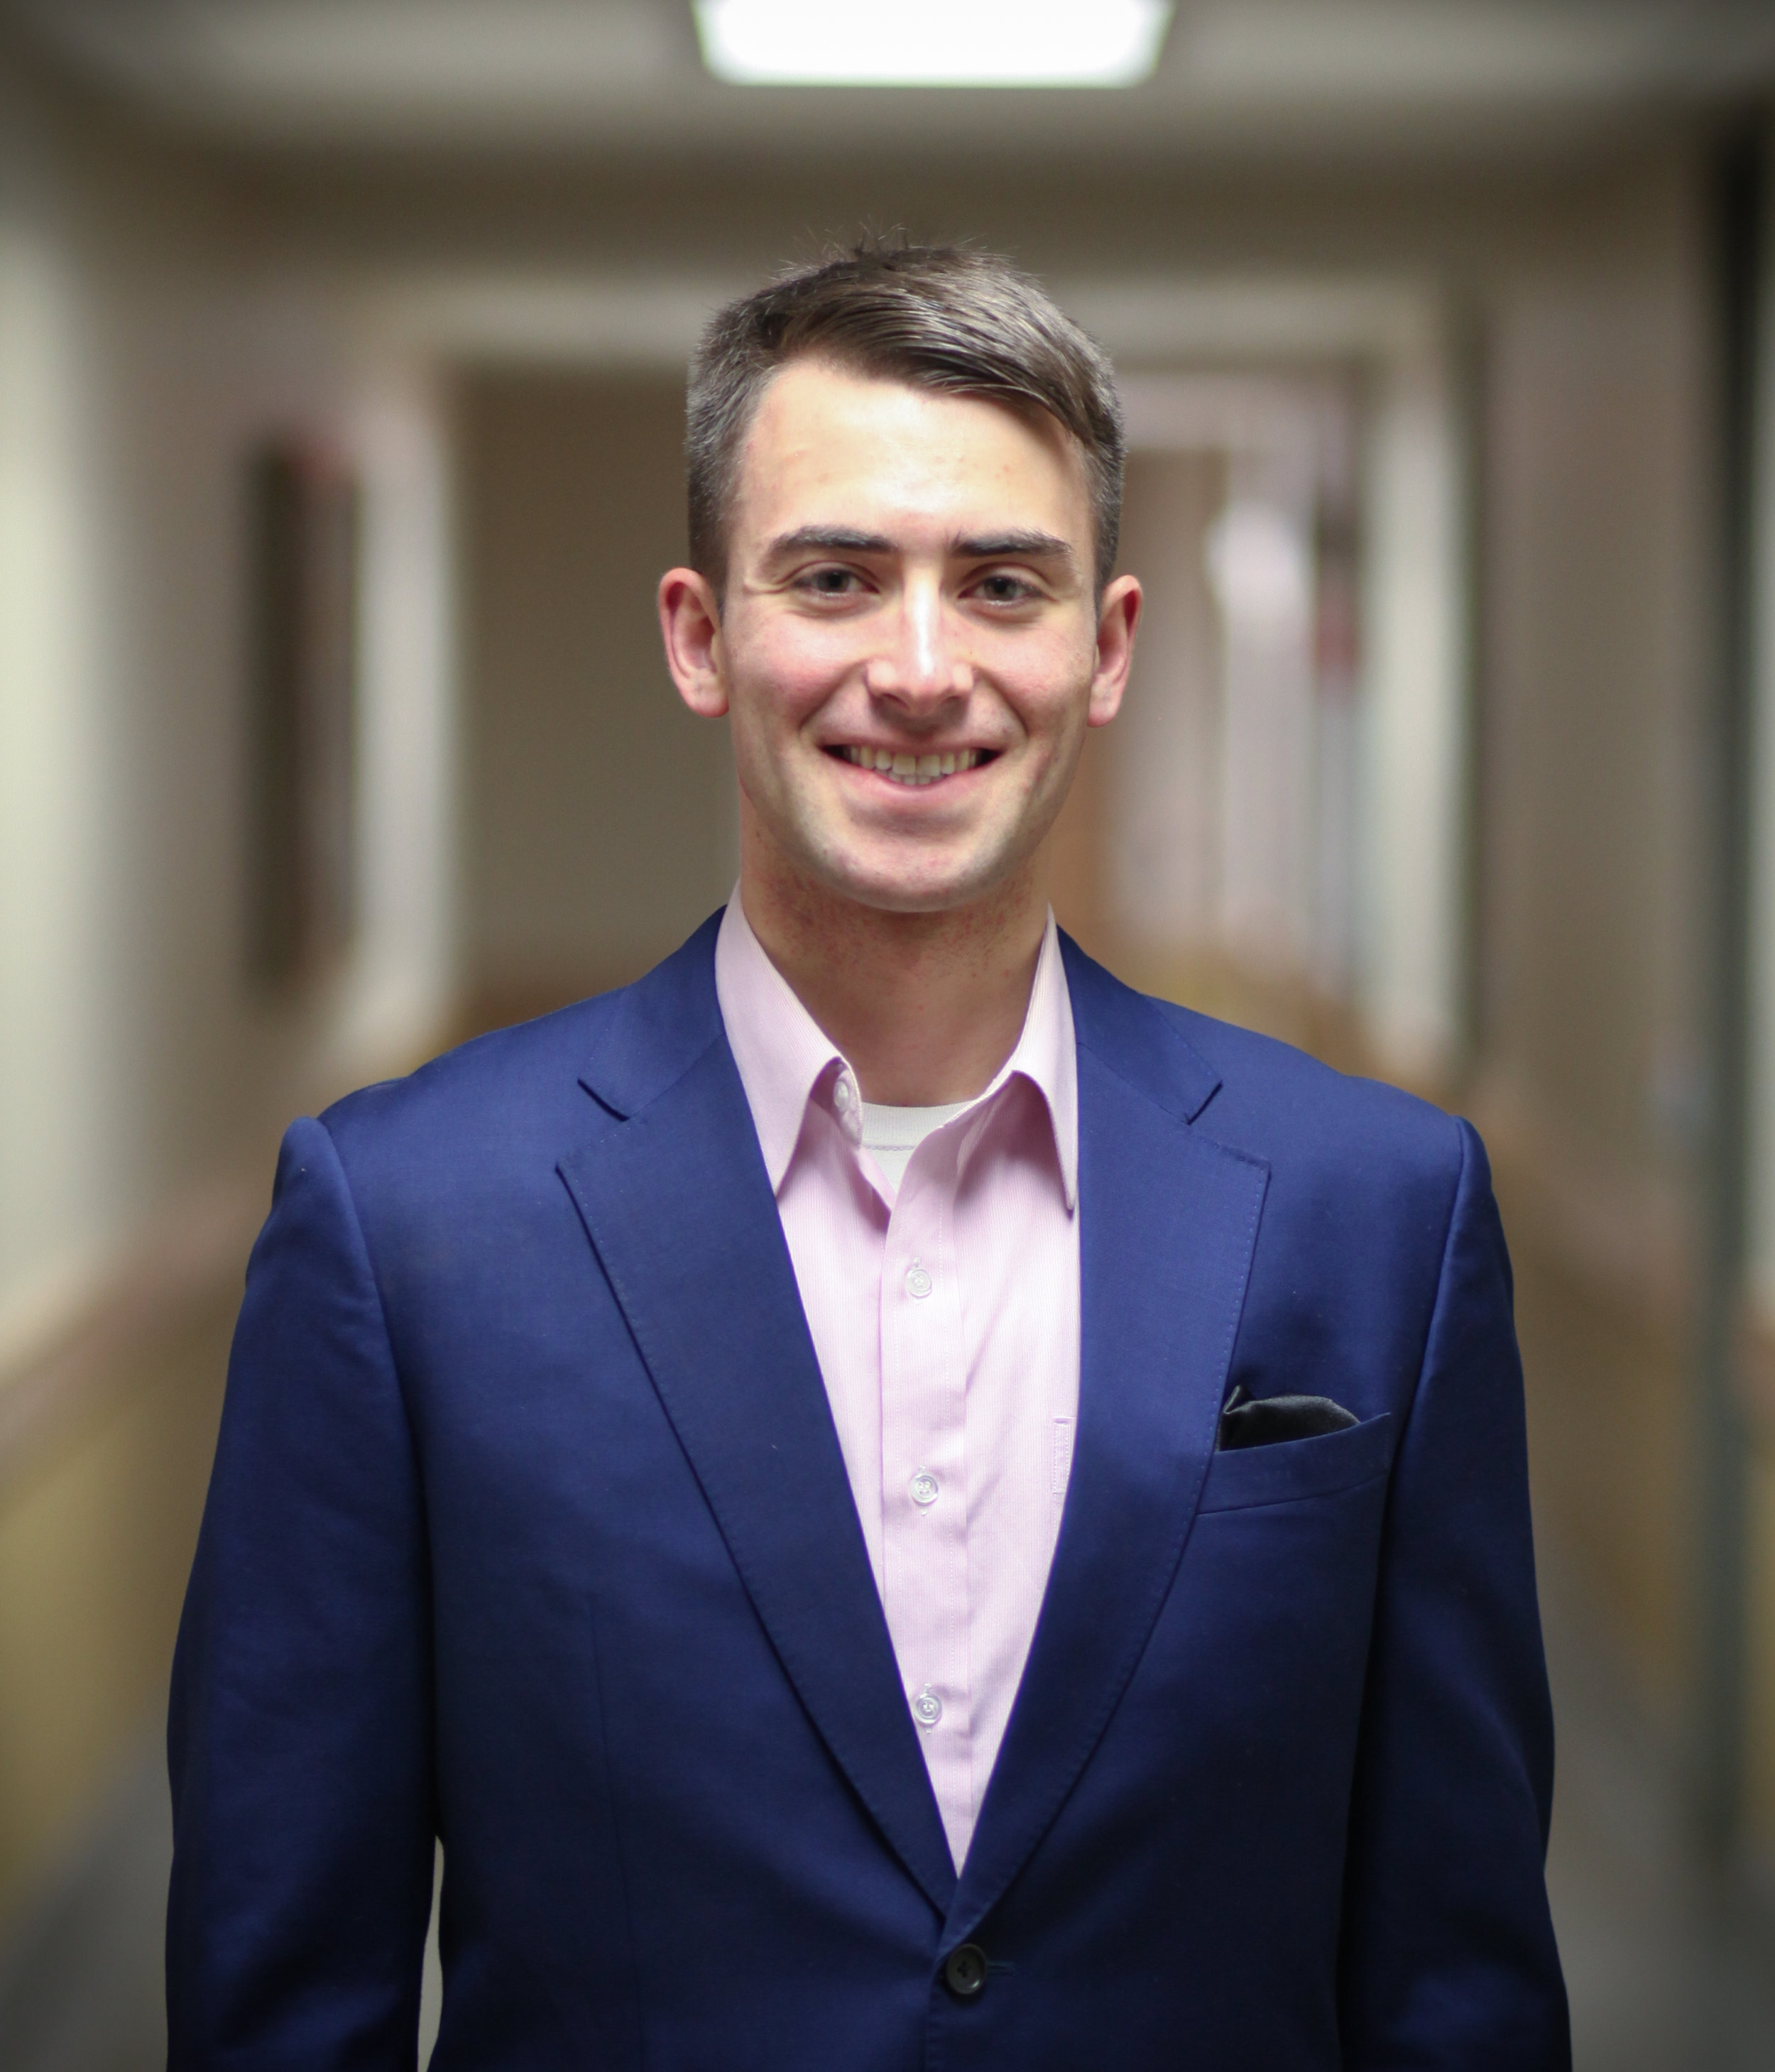 Spencer Drakontaidis- Engineer   Spencer is computer science major at the United States Military Academy at West Point with a concentration in network security and data analysis. His interest in keeping security at the forefront of software development is his focus for The Extra Mile Foundation.